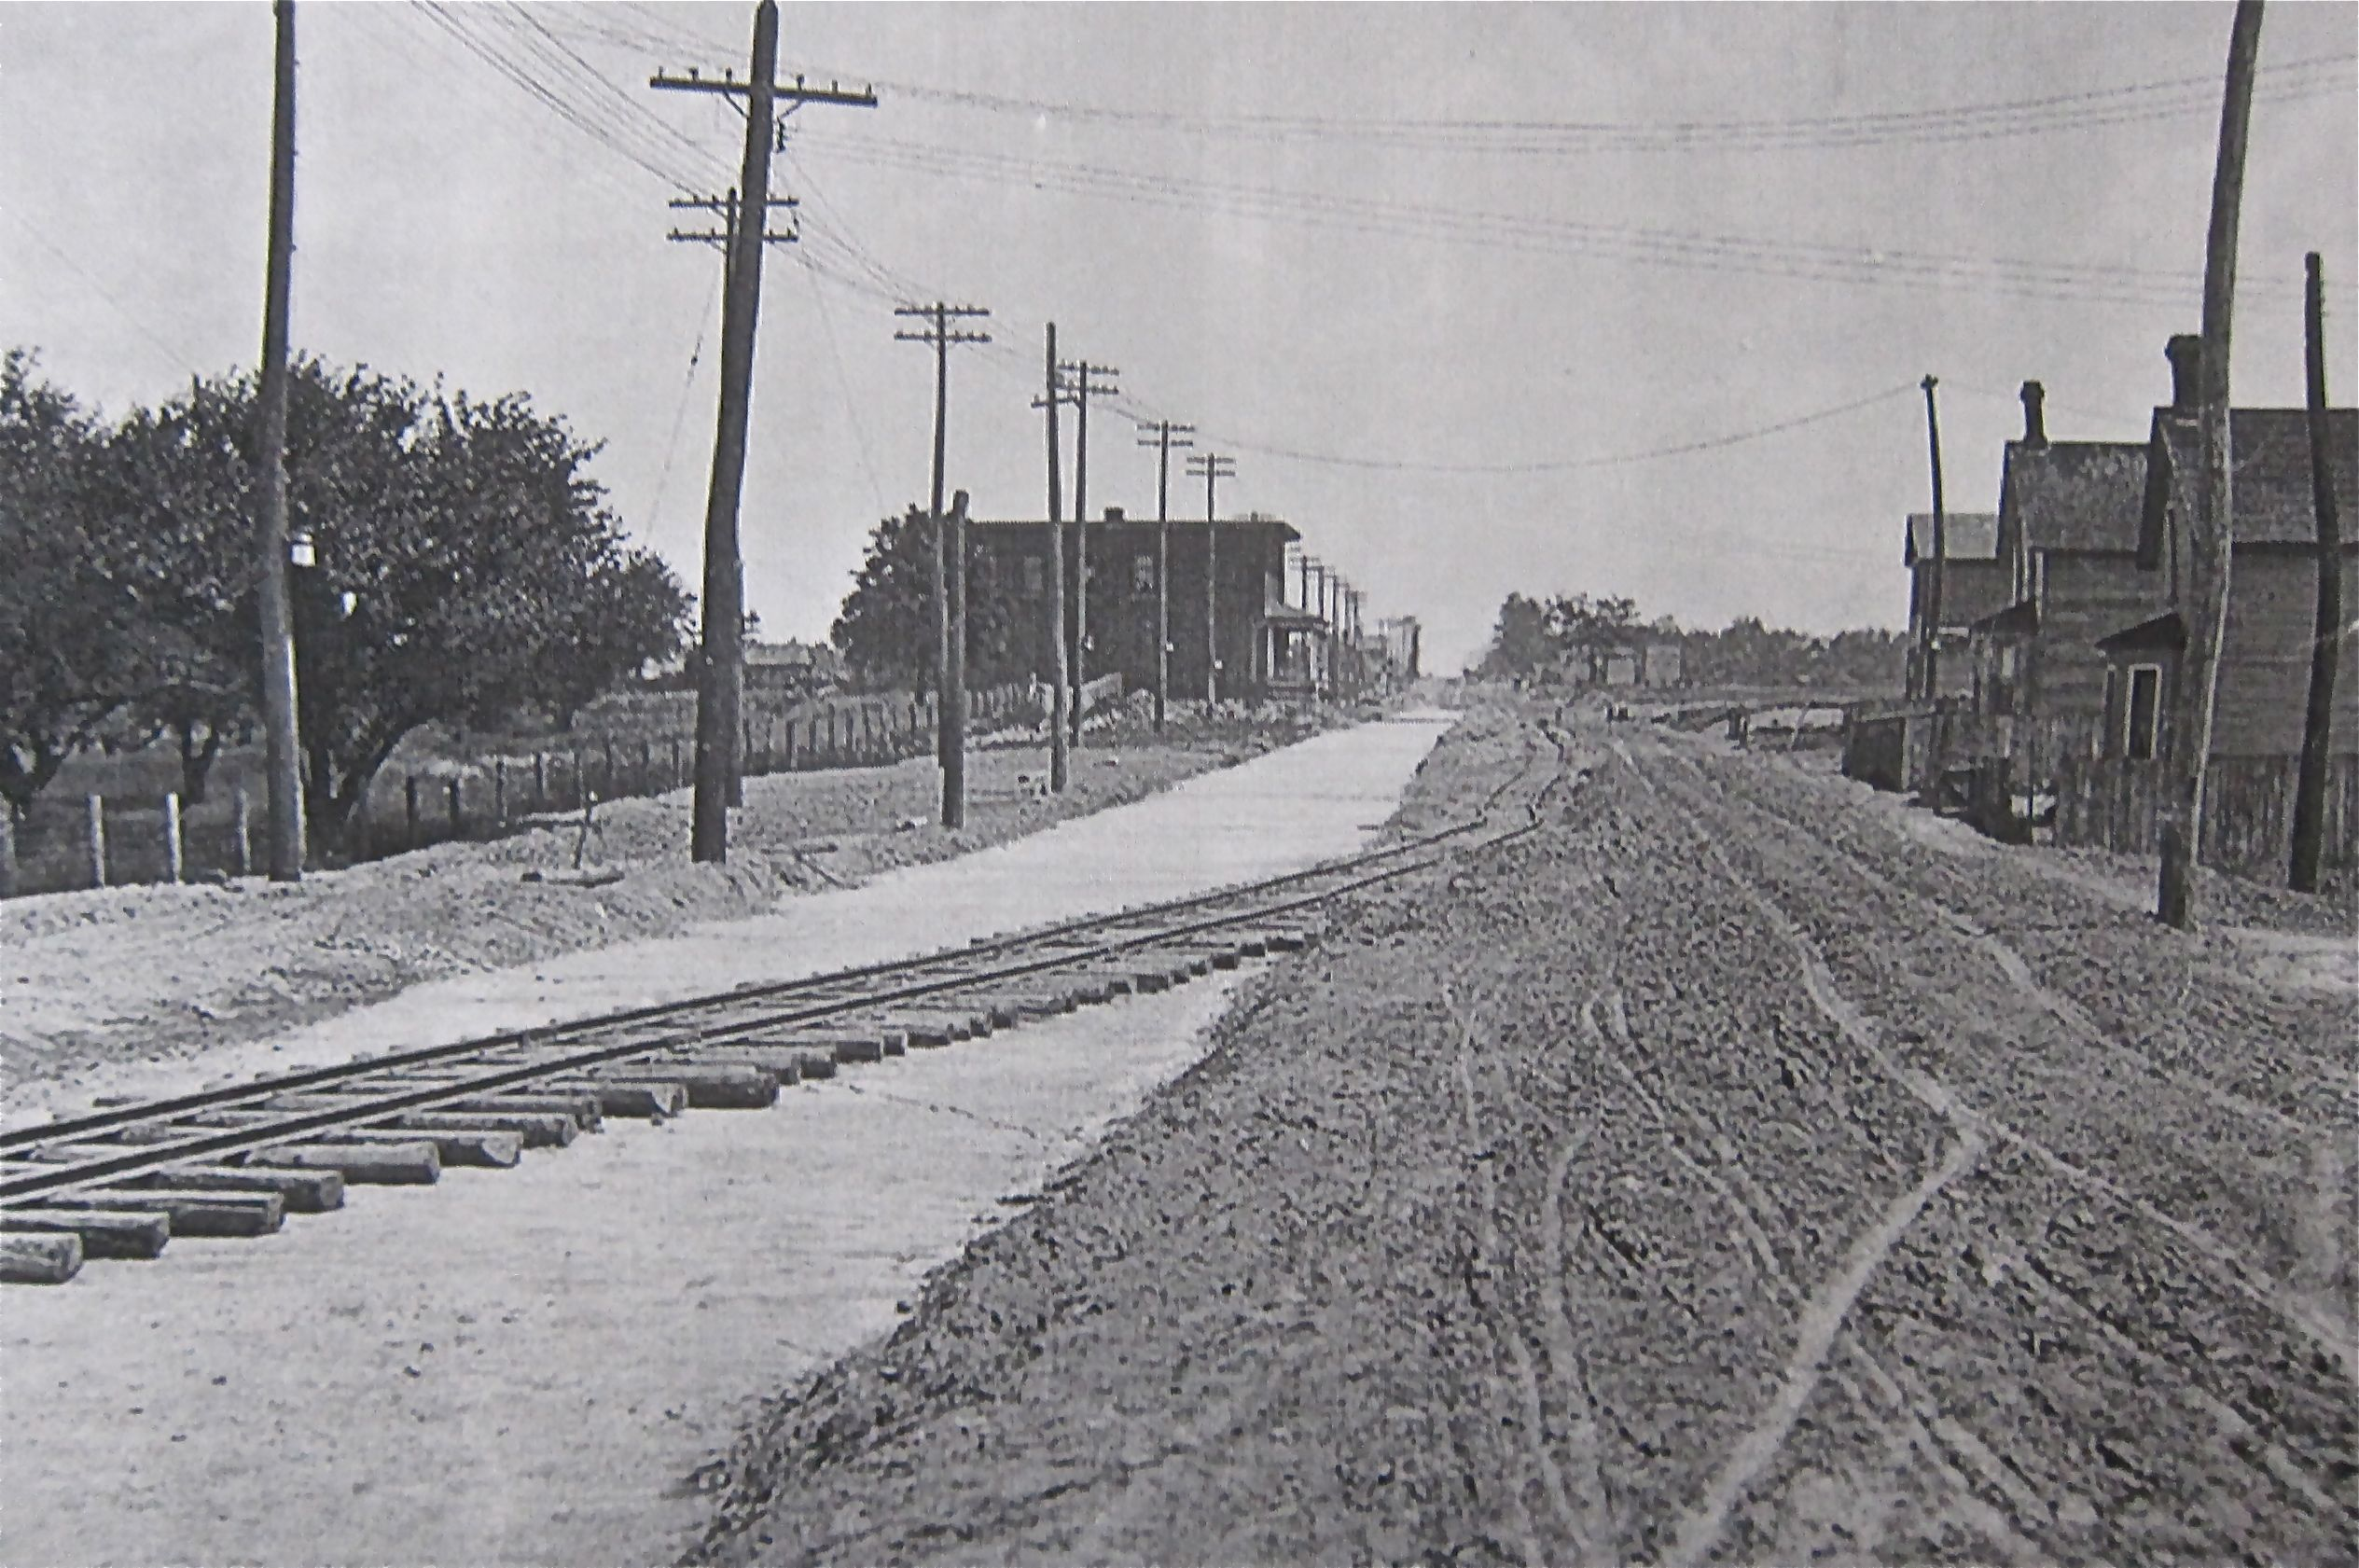 Preparation work for streetcar track construction involved laying some temporary rails on the East Danforth.